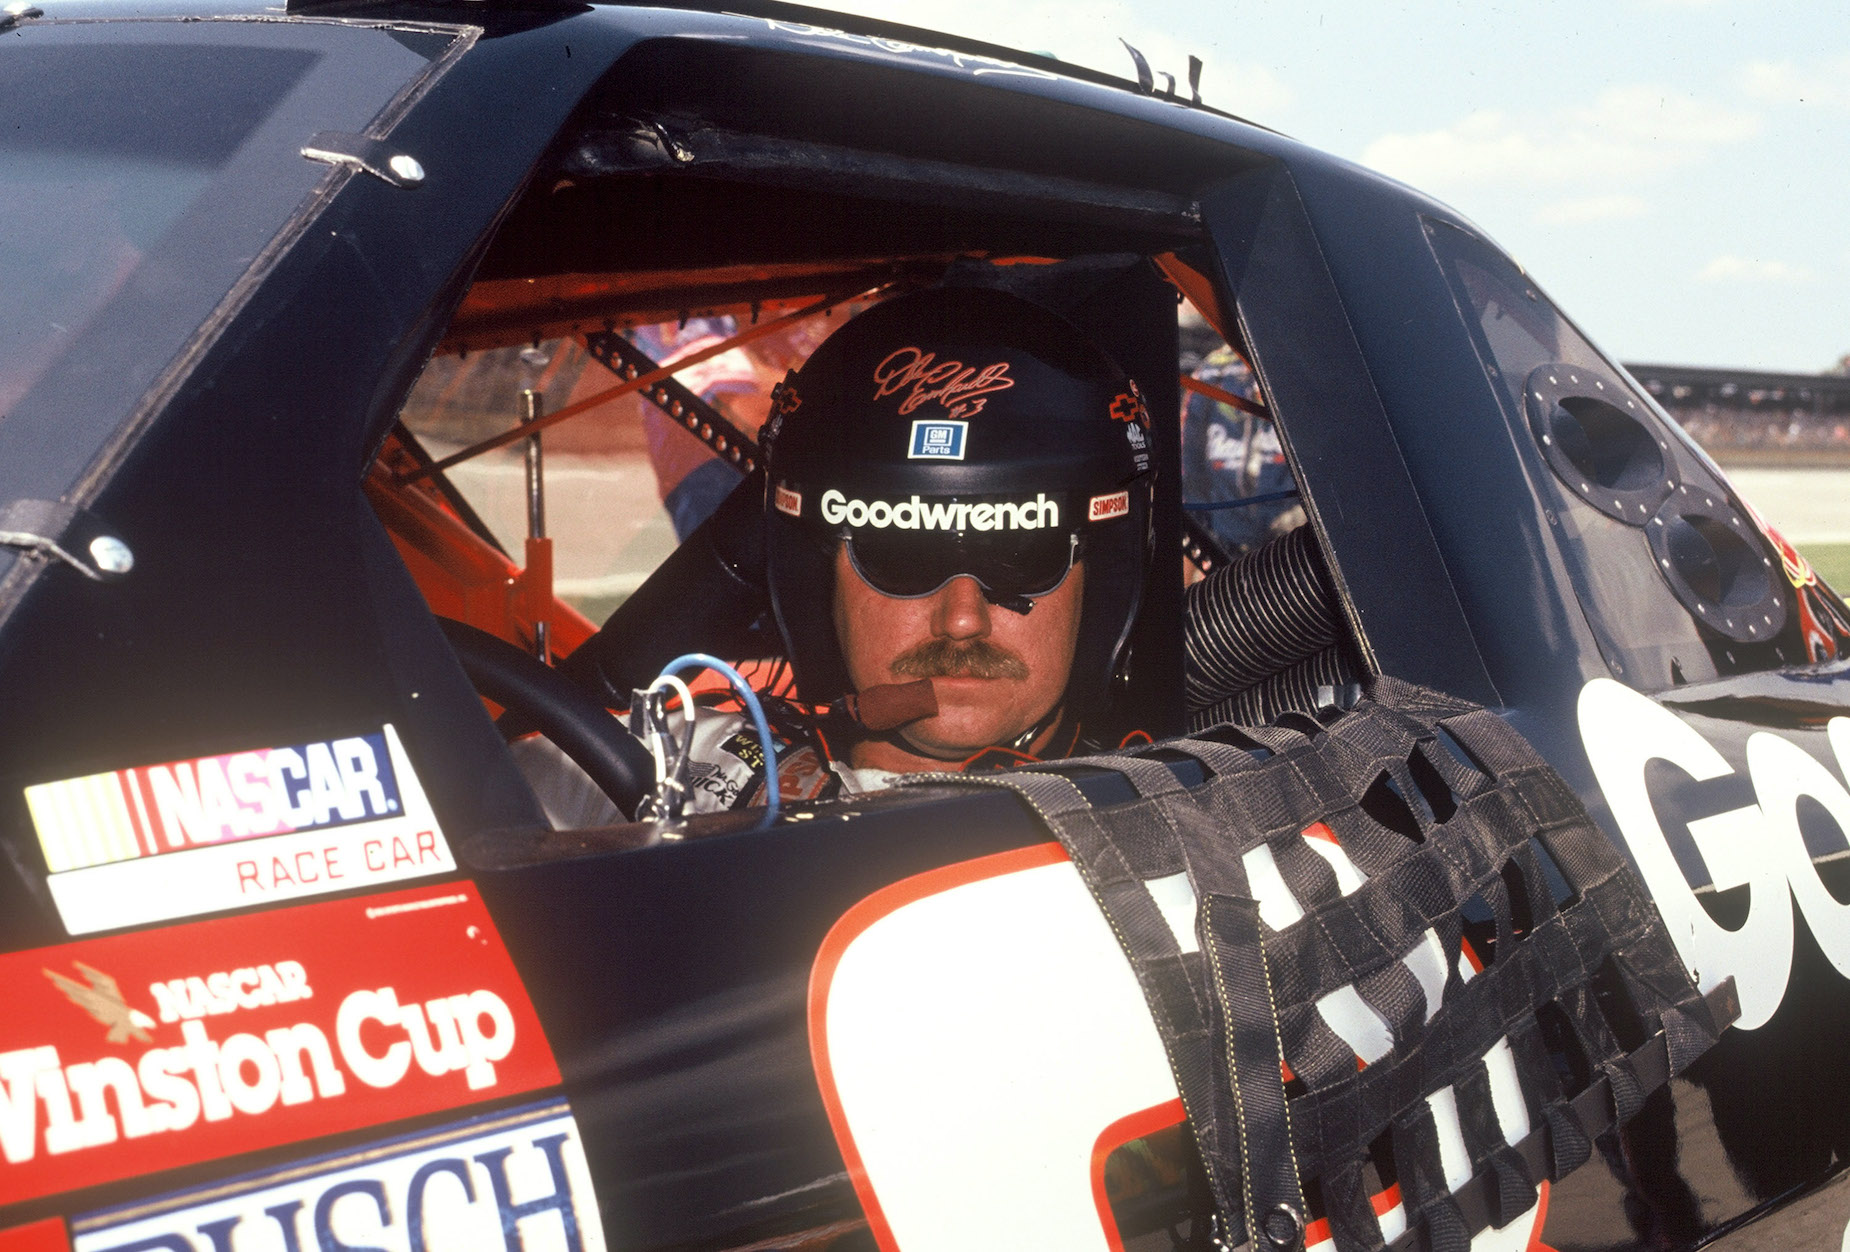 Dale Earnhardt Sr. in his car at the Daytona International Speedway/